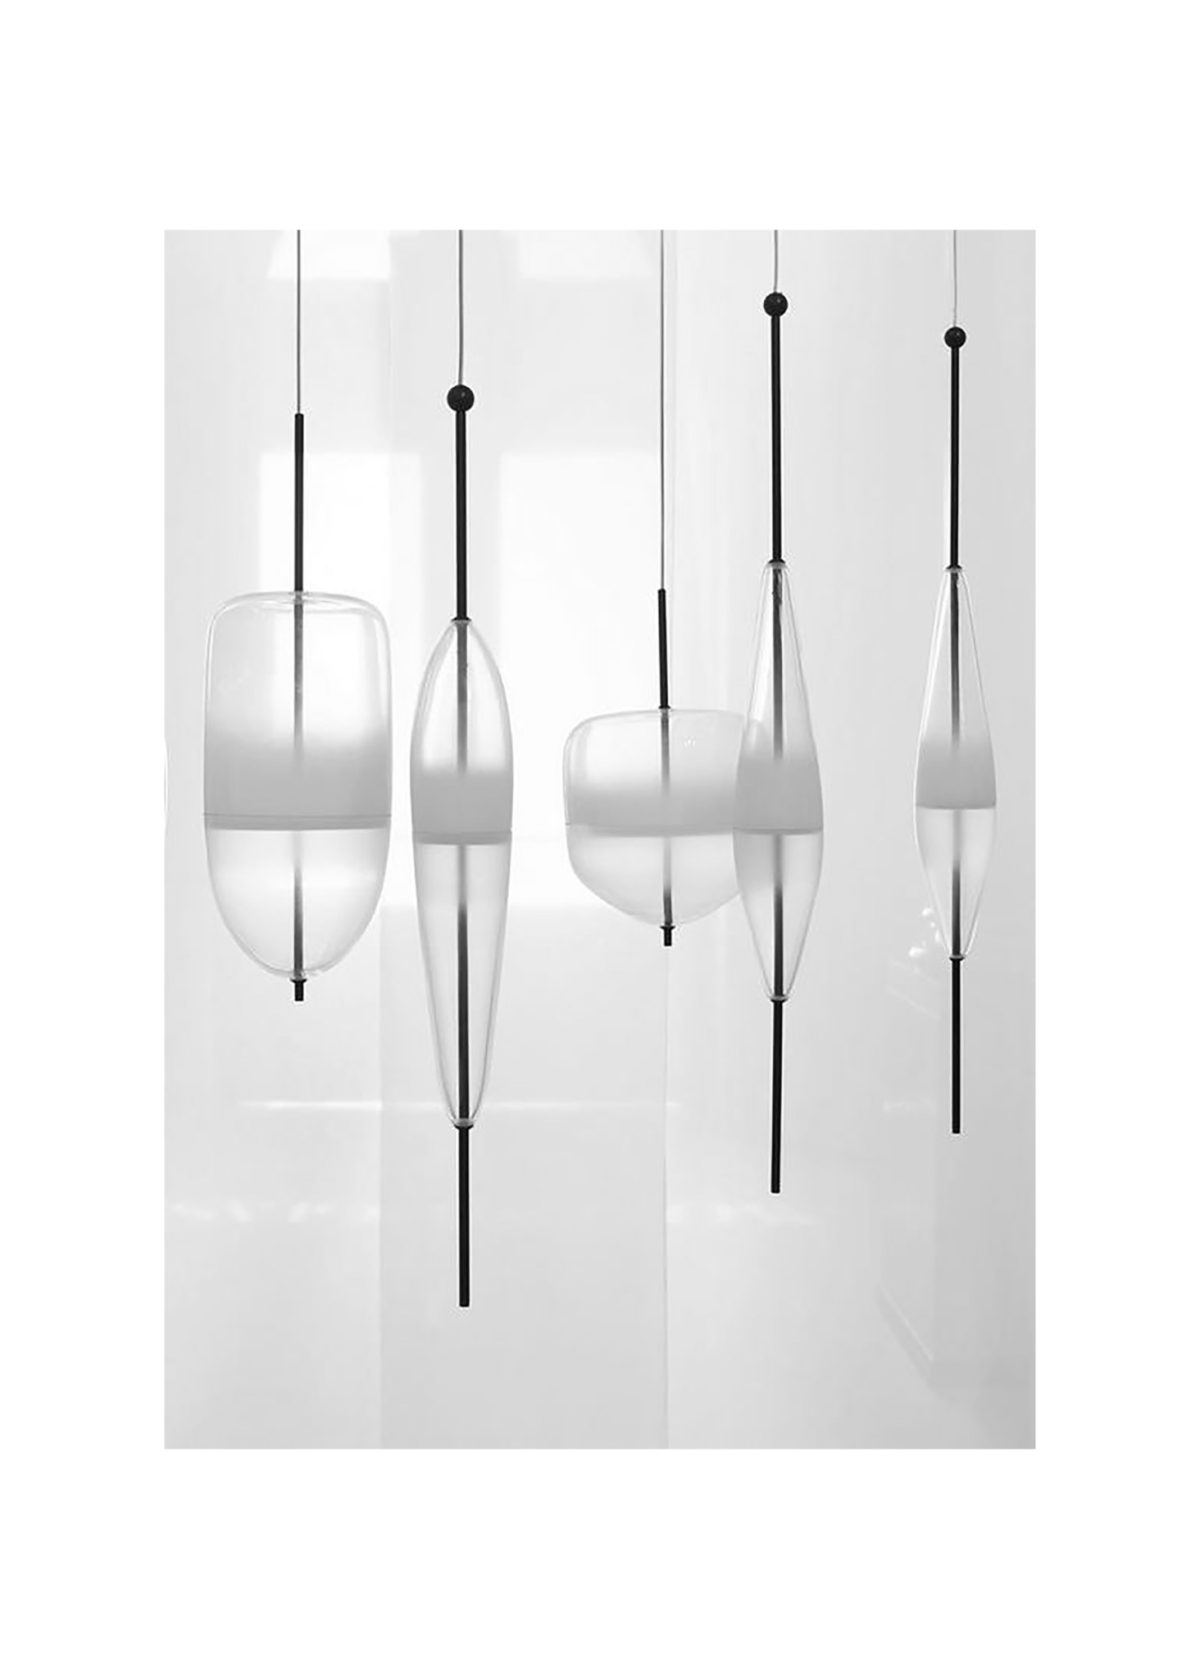 NaoTamura_Flowt, NaoTamura_Horizont01, NAOTAMURA, installation, WonderGlass, blowing glass, lighting, d'daysparis, Palaisdetokyo, Paris, France, Venice, 田村奈穂、田村なお、デザイナー、照明、インスタレーション、ニューヨーク NaoTamura, nownao, nao tamura, NewYork designer, NYC, Female designer